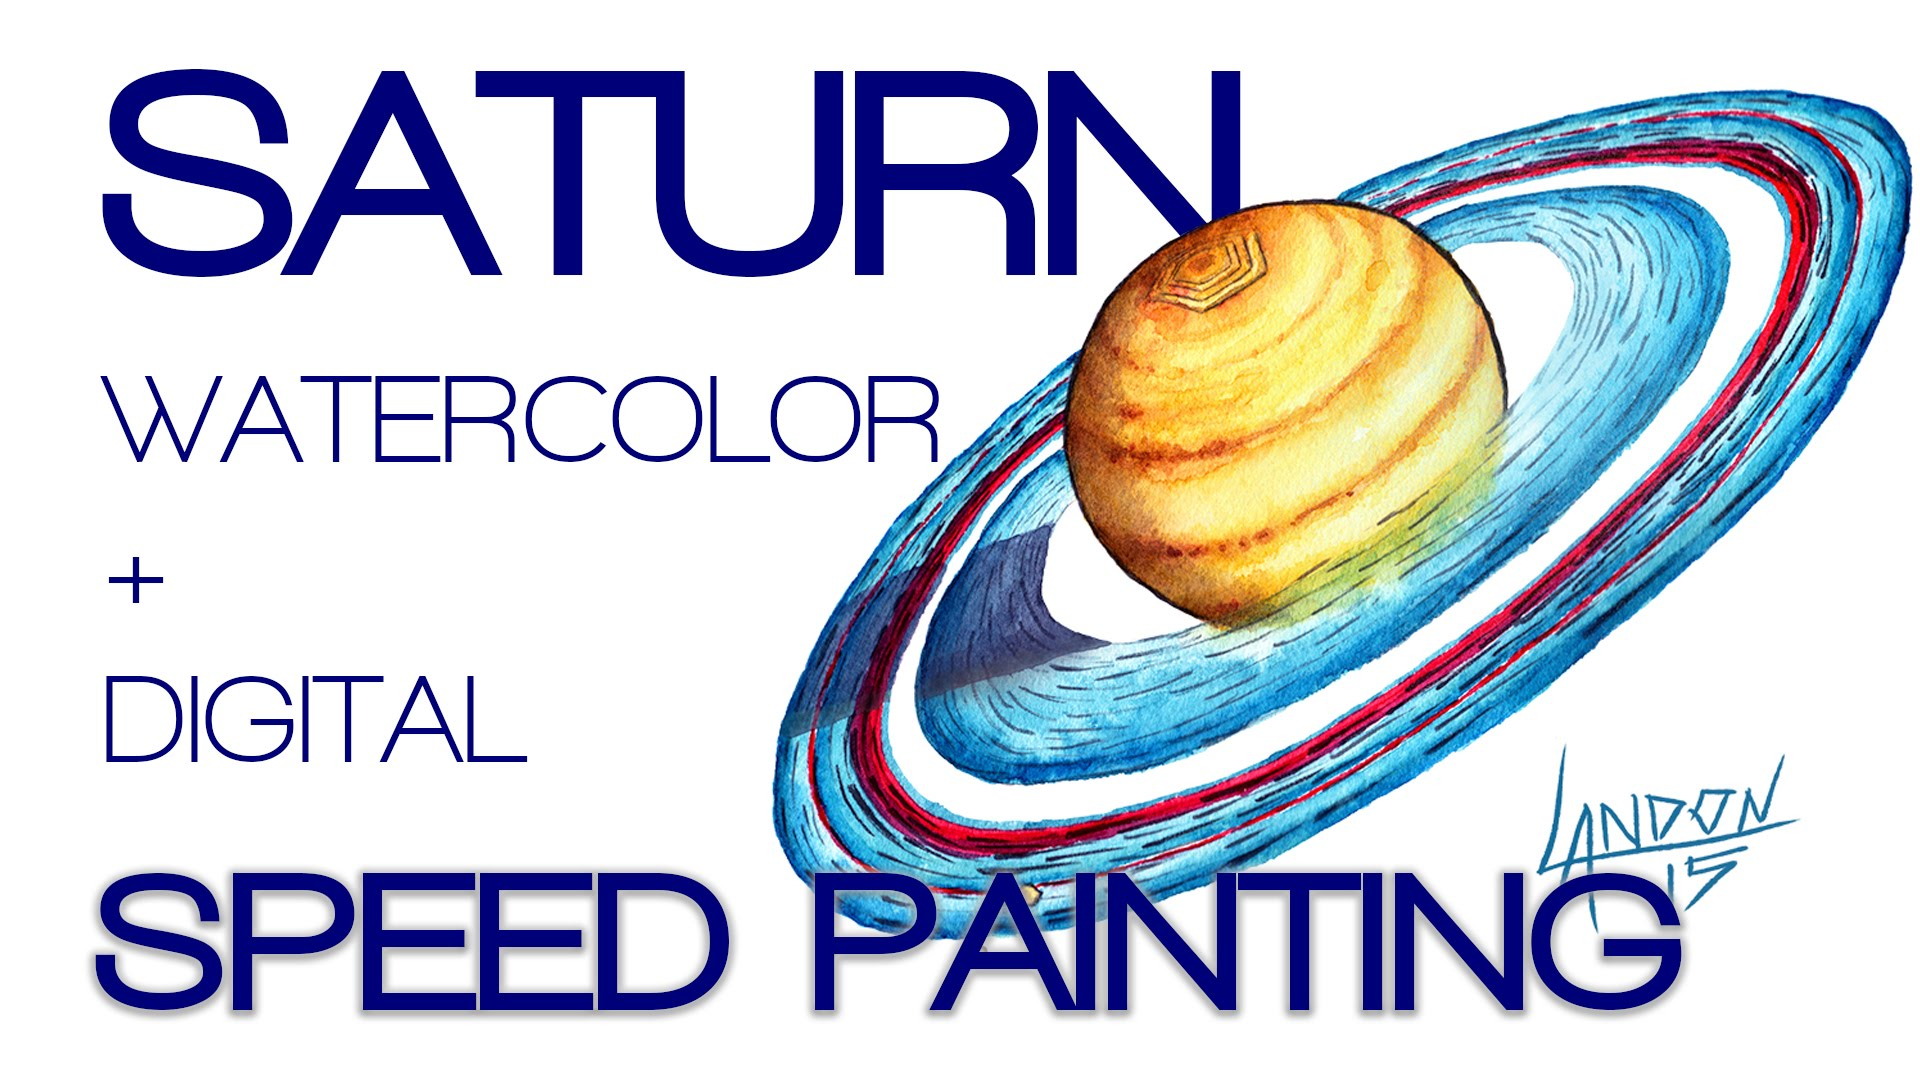 1920x1080 Saturn Watercolor Speed Painting